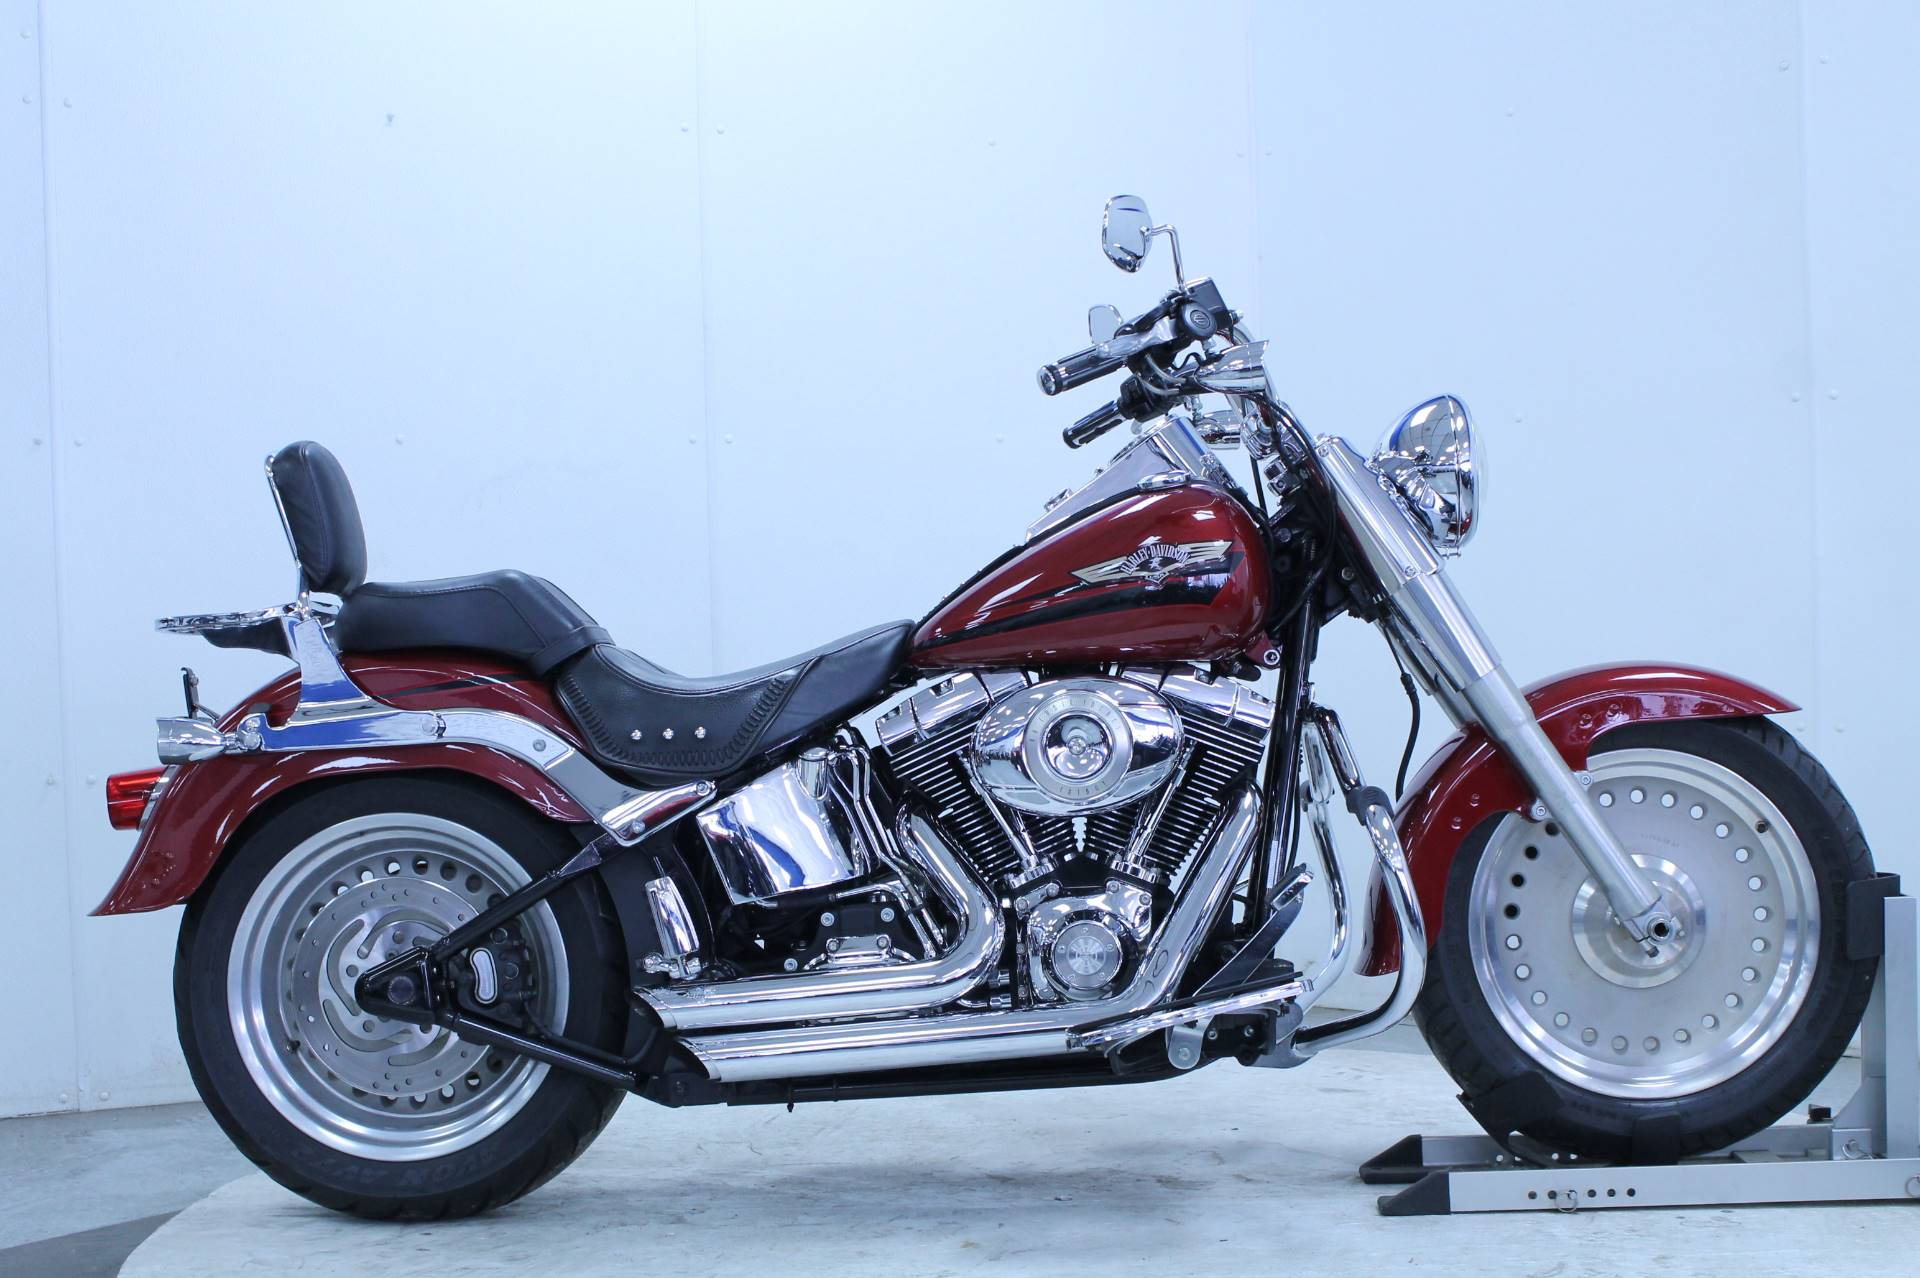 Used 2007 Harley-Davidson FLSTF Softail® Fat Boy® Motorcycles in ...